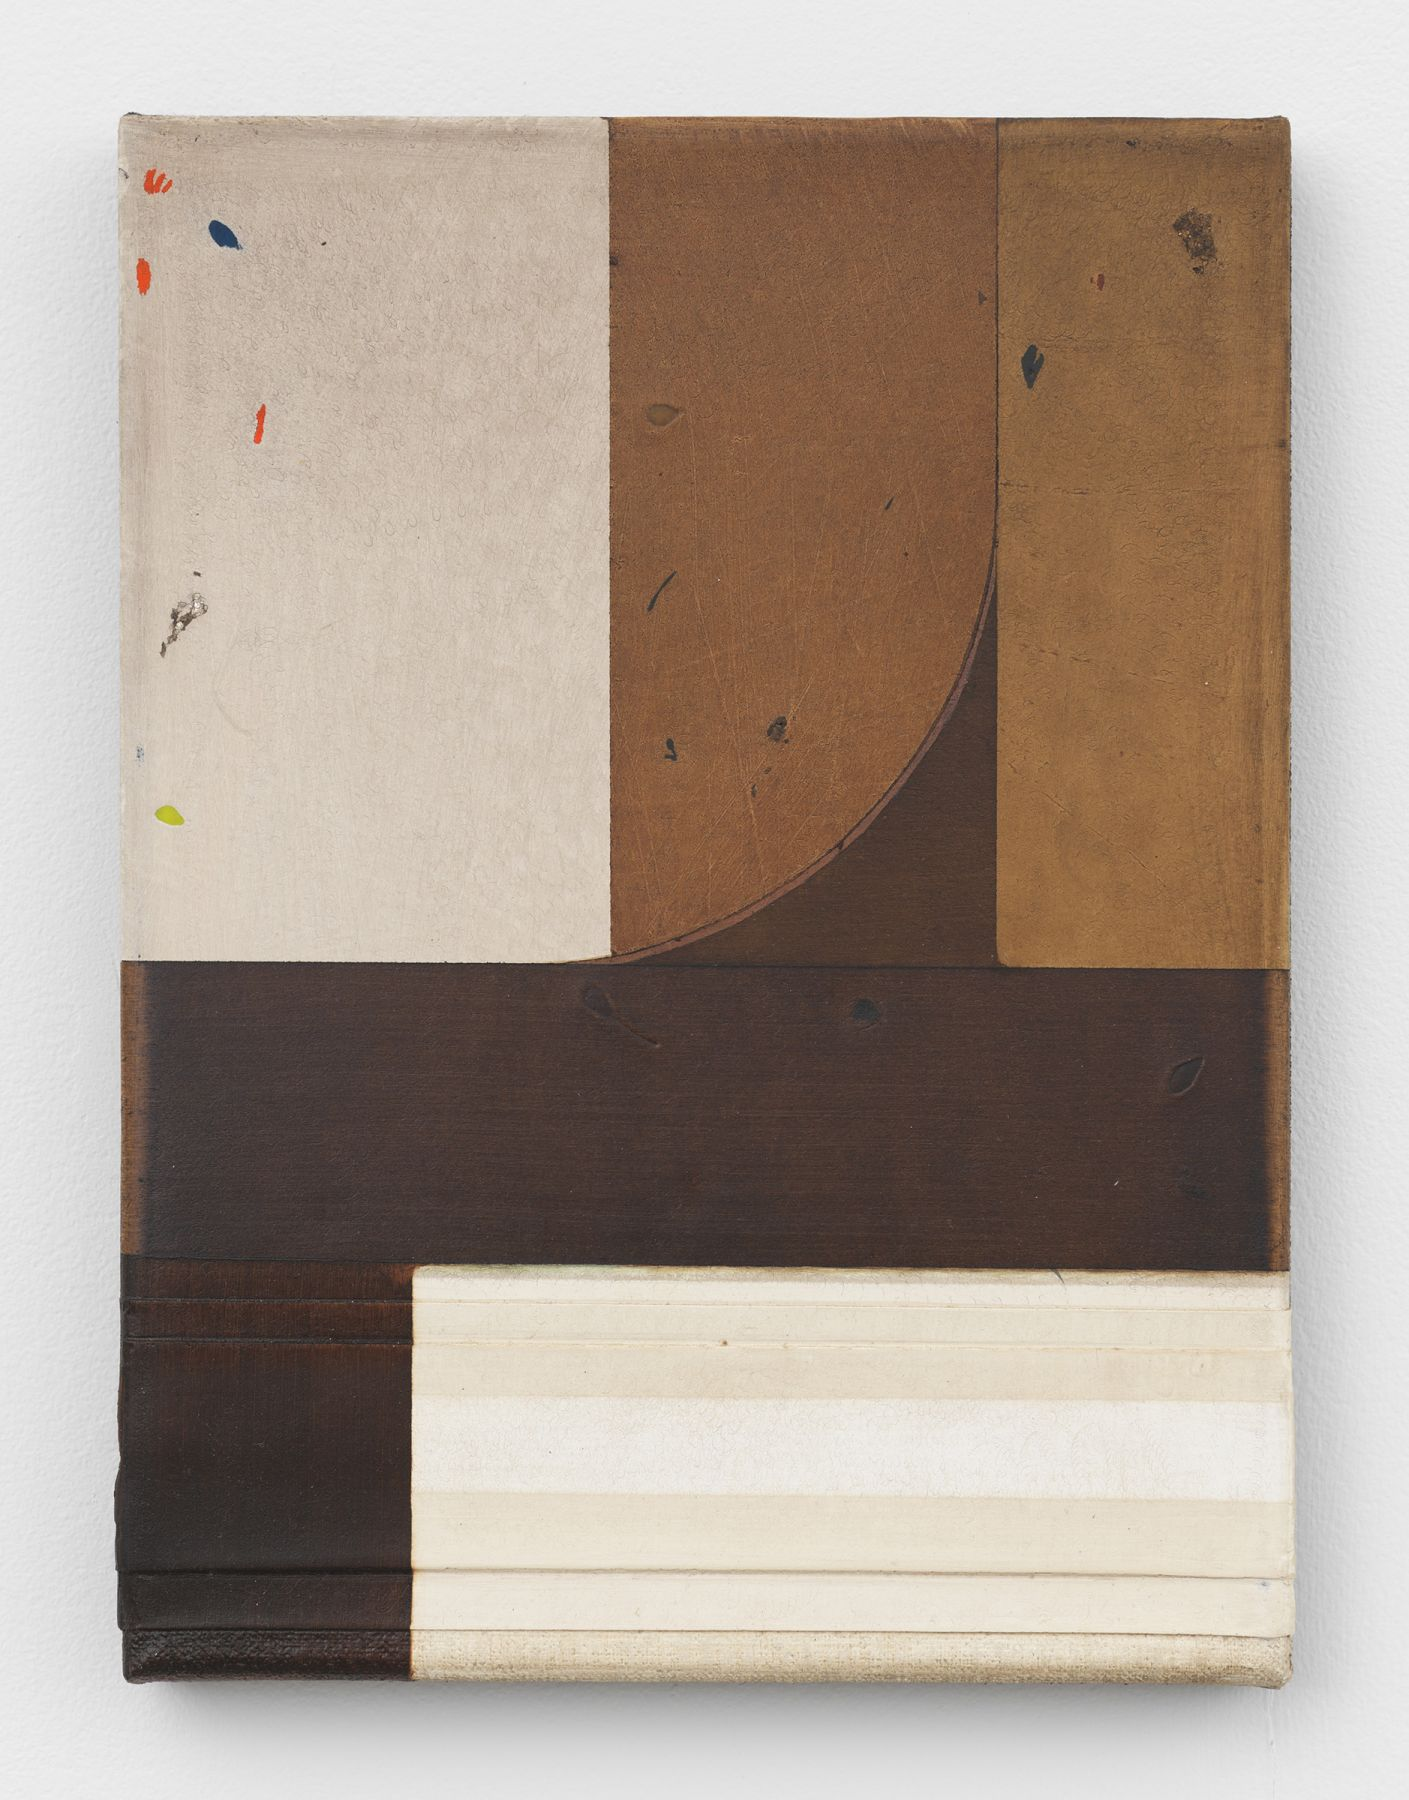 A painting by Svenja Deininger on view in a New York City gallery